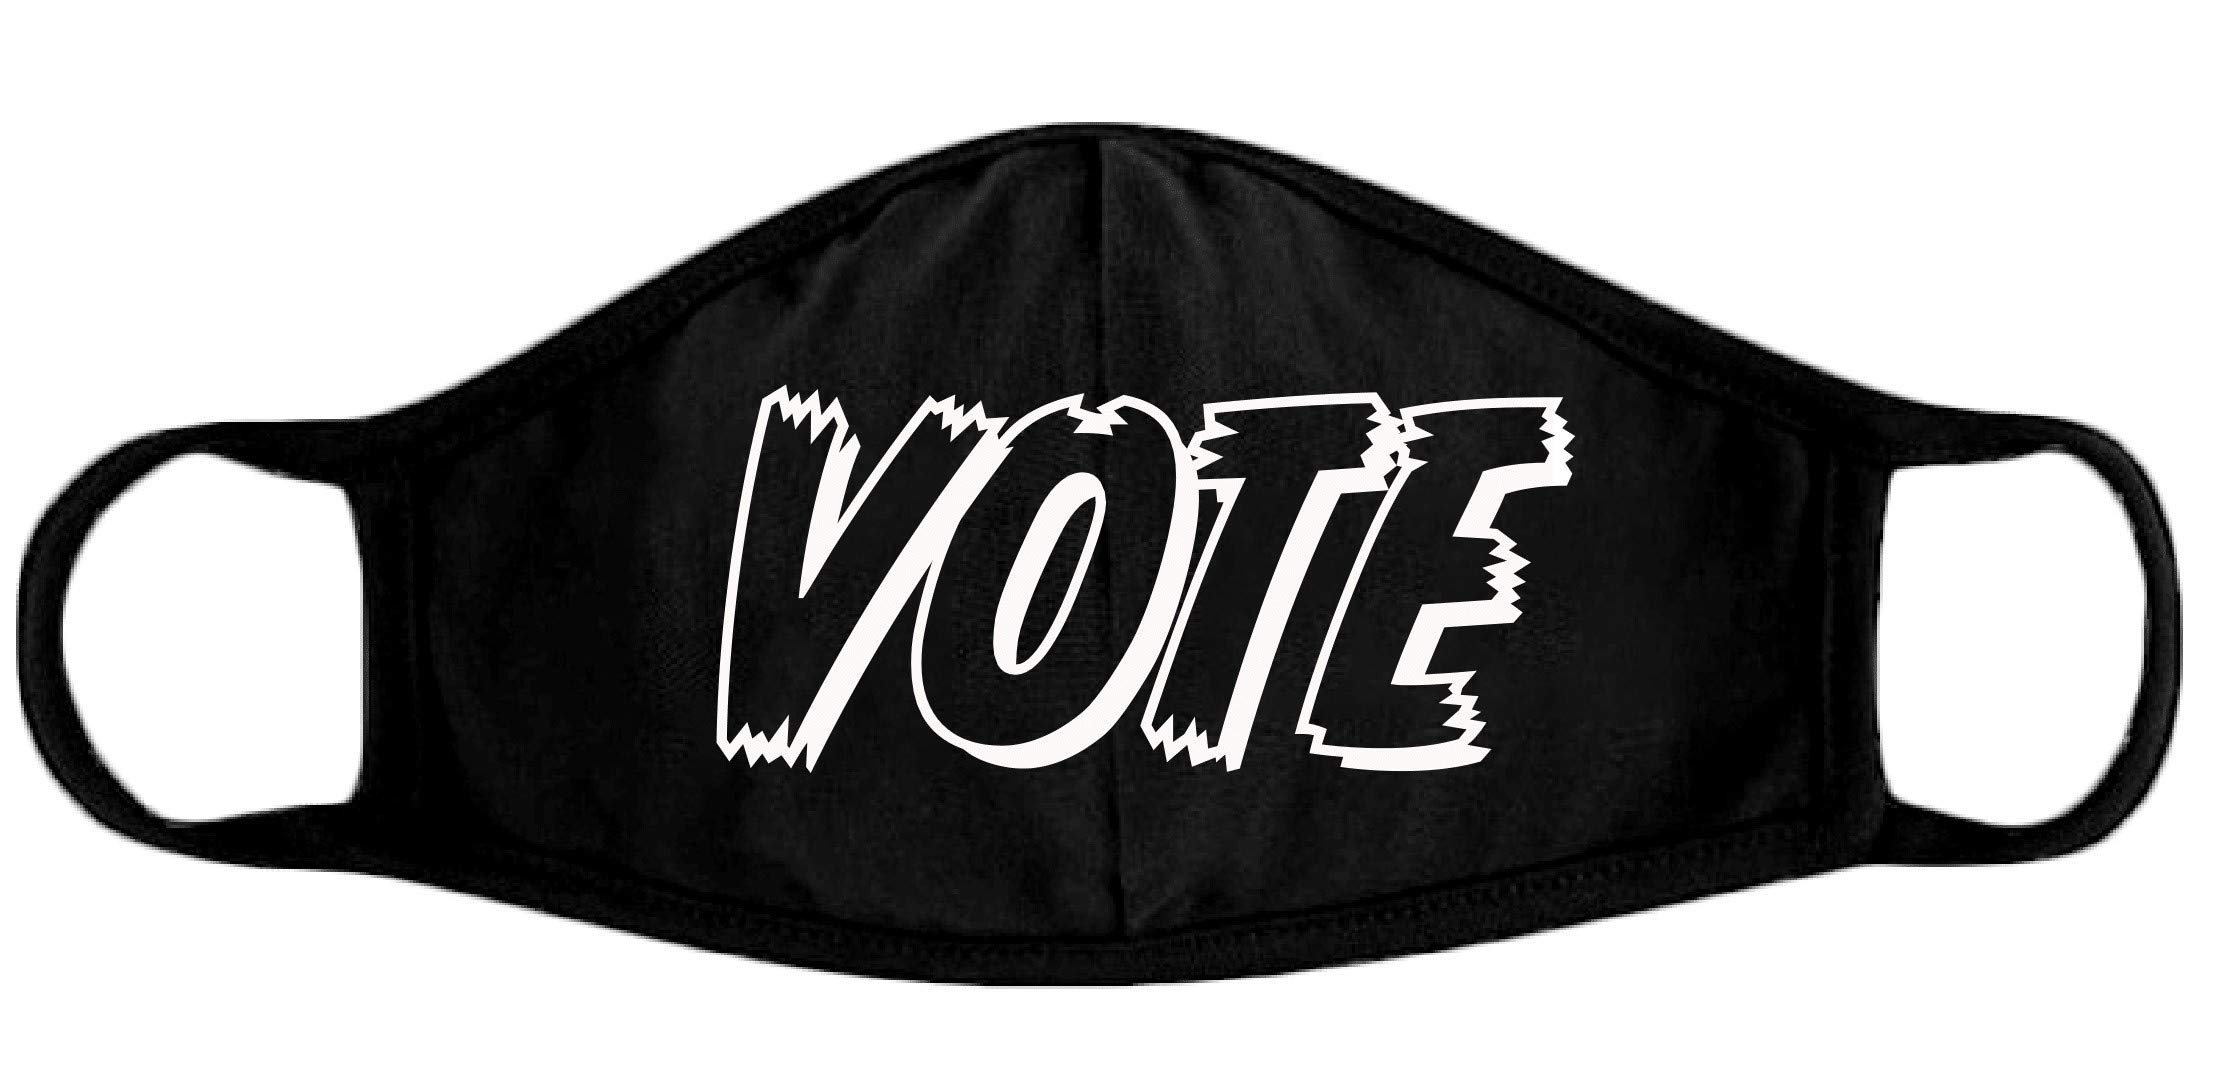 Pack of 2 - Vote Unisex 2 Layer Cotton Face Covering Washable and Reusable Black